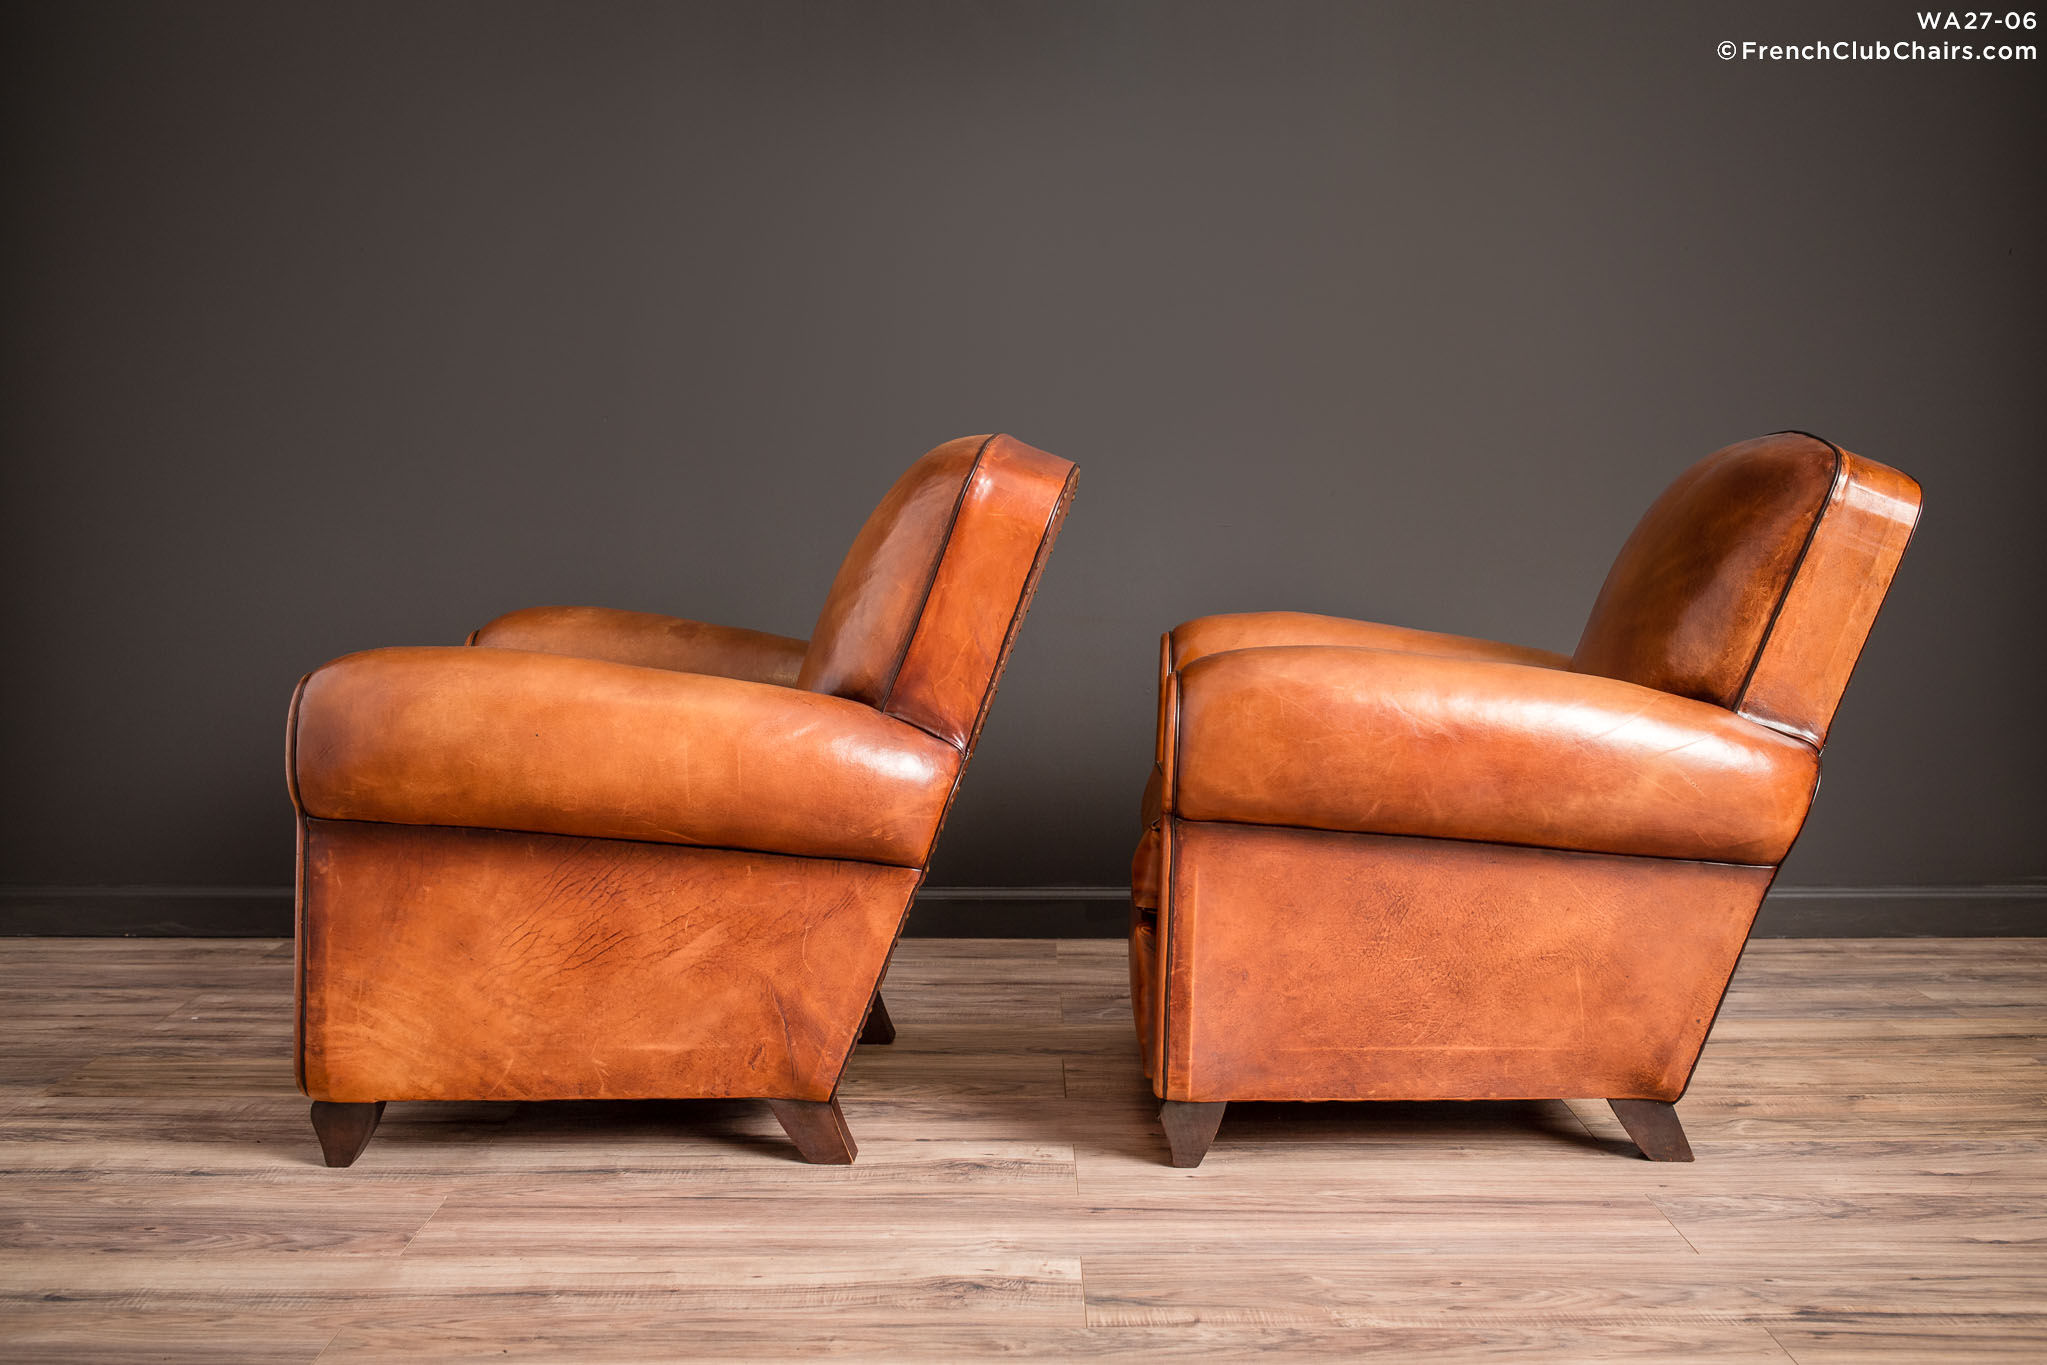 WA_27-06_Library_Giverny_Cognac_Pair_R_4LT-v01-williams-antiks-leather-french-club-chair-wa_fcccom